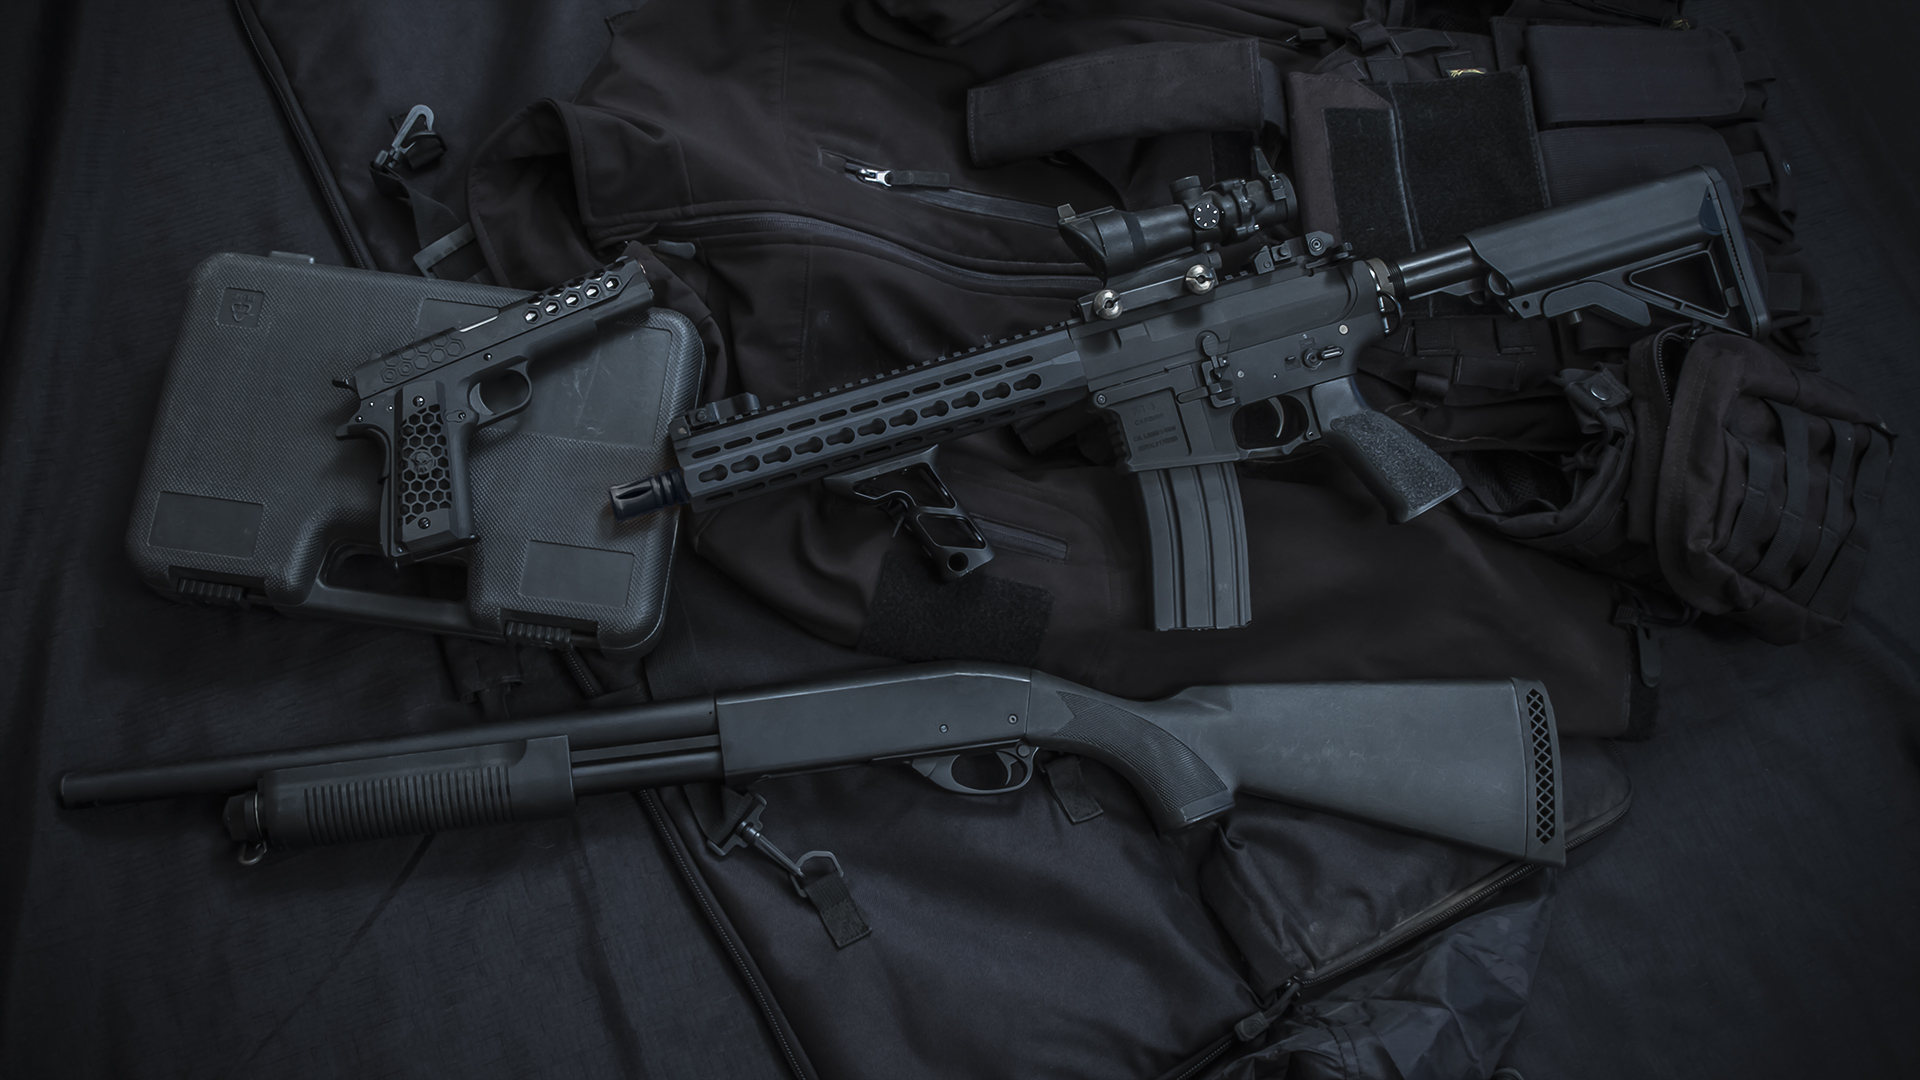 The JG SP3-A3 full metal gearbox AEG rifle has unparalleled performance advantages due to its versatile design and gearbox/motor set-up. JG has tweaked the internals for optimum.